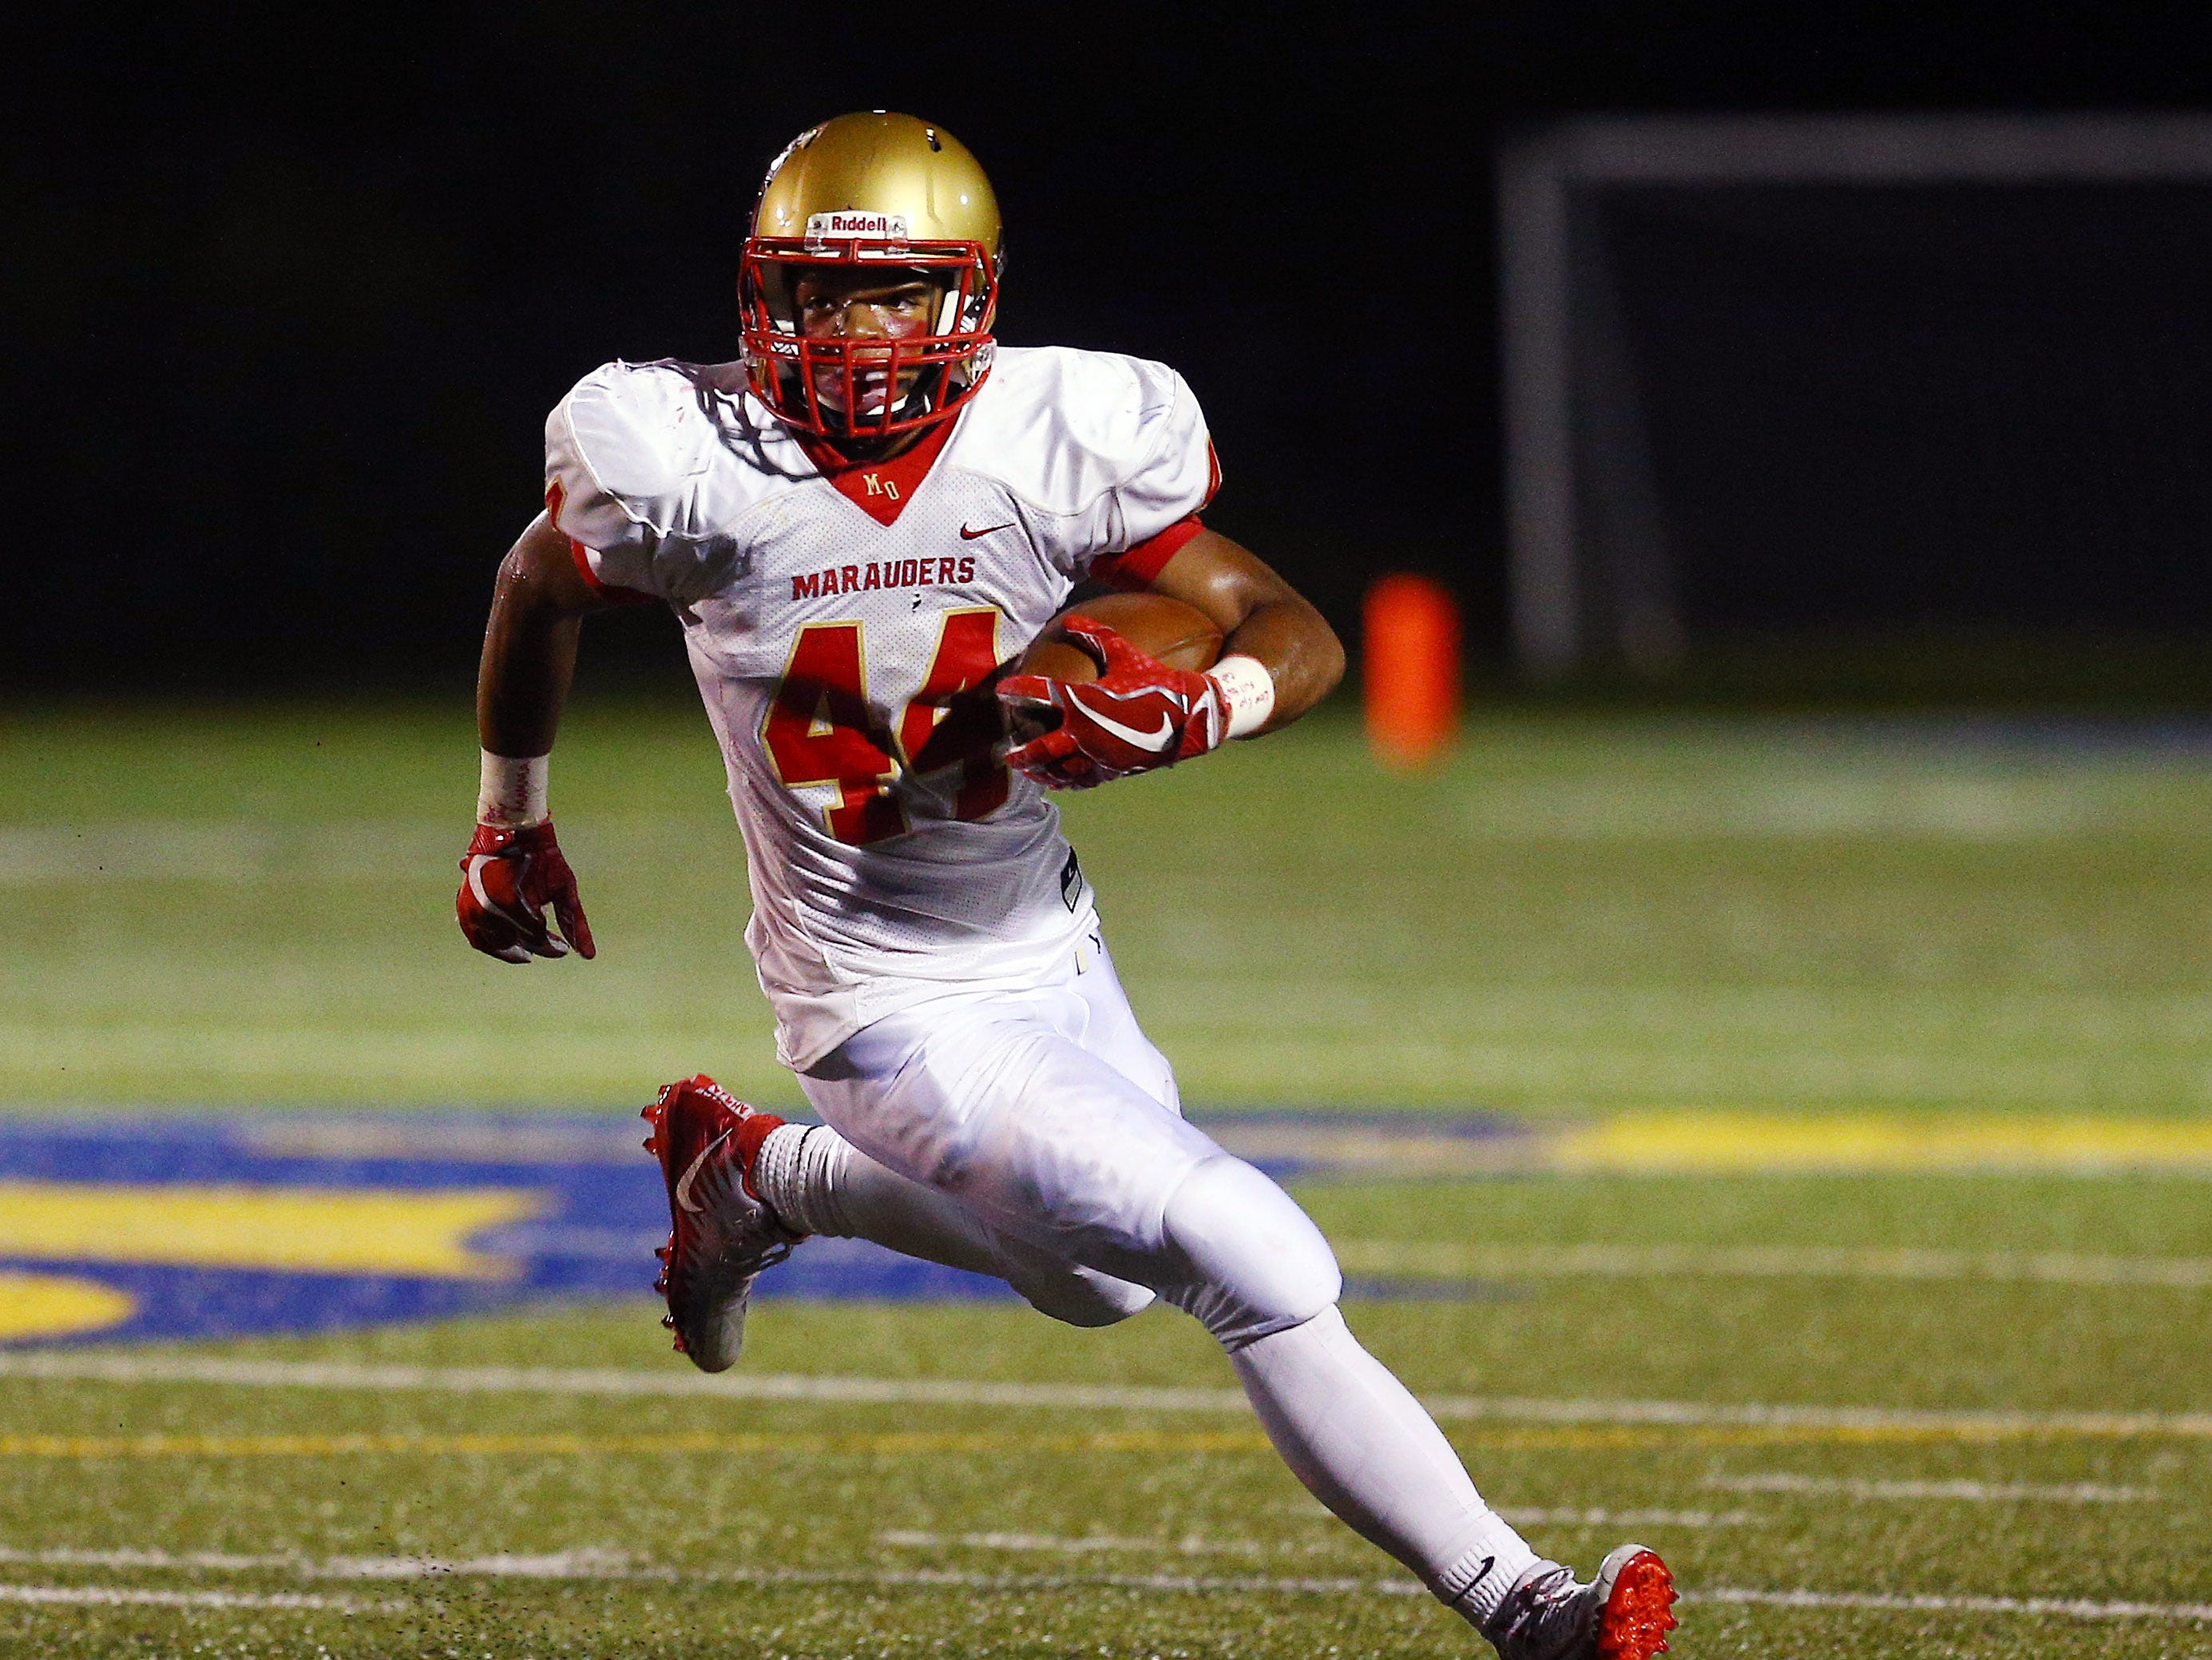 Mount Olive running back Trevon Reid gains yardage vs. Jefferson during their Friday night football game. September 14, 2018, Jefferson, NJ